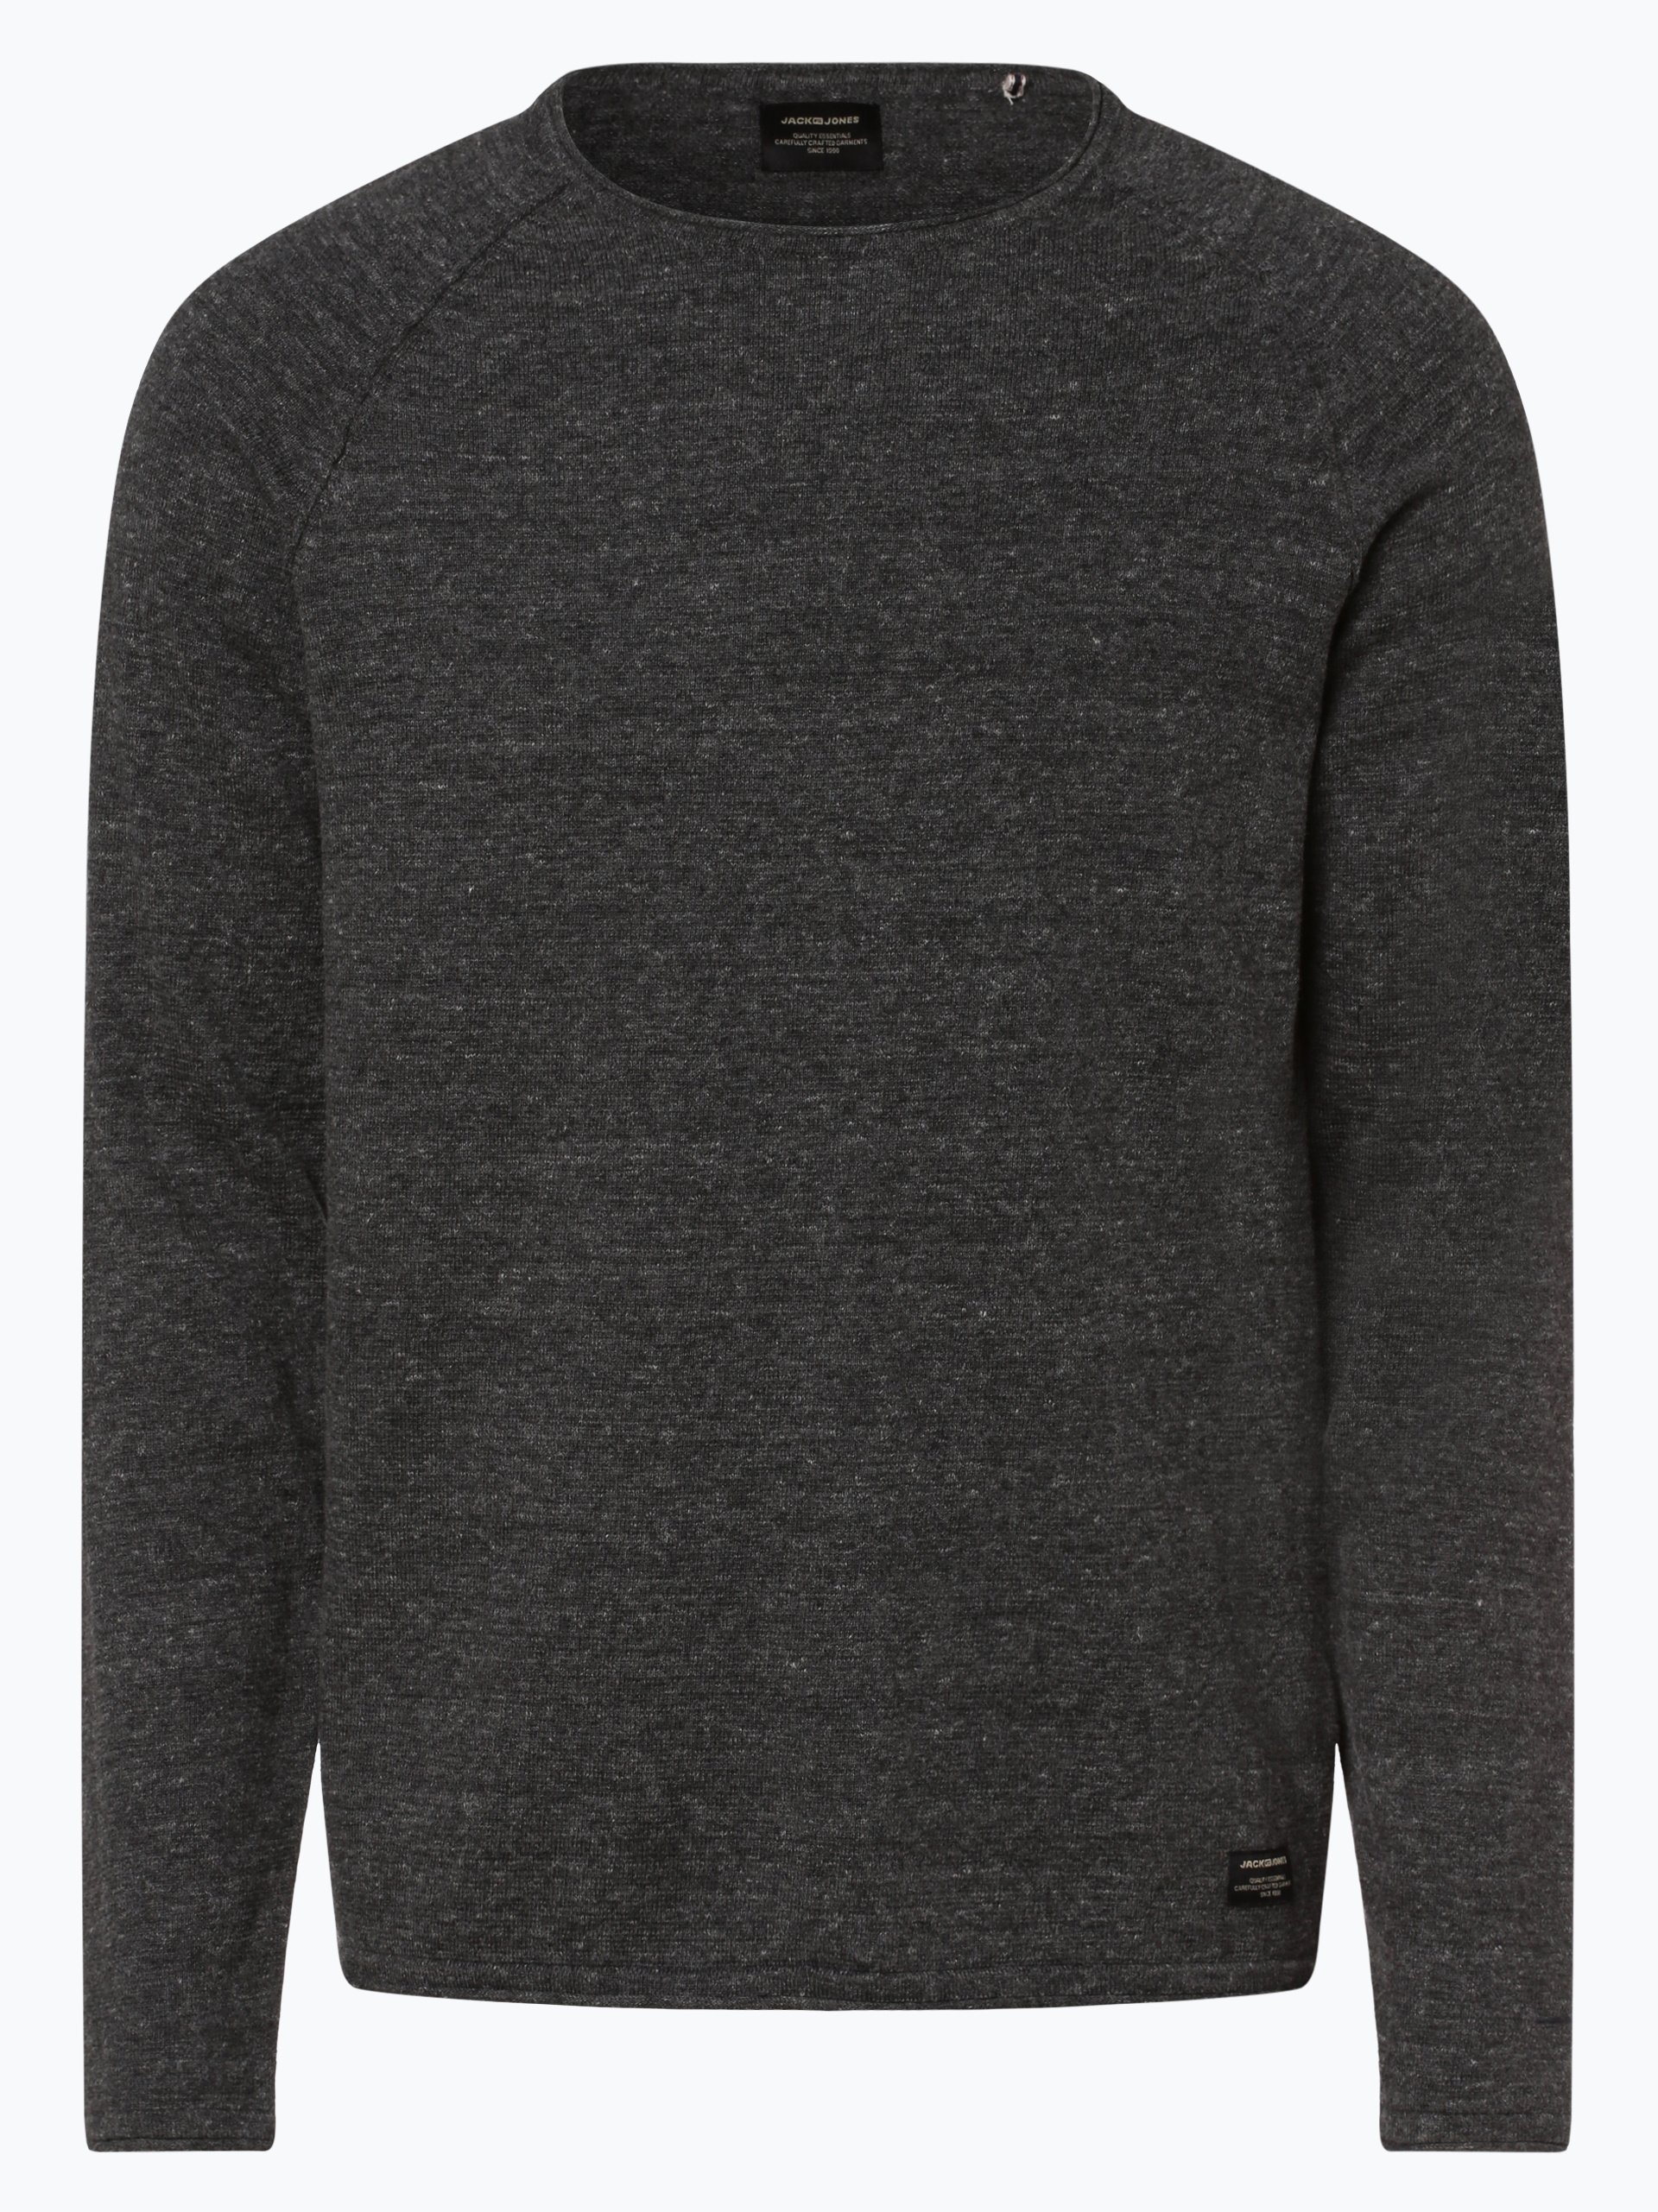 Jack & Jones Herren Pullover - Jjeunion